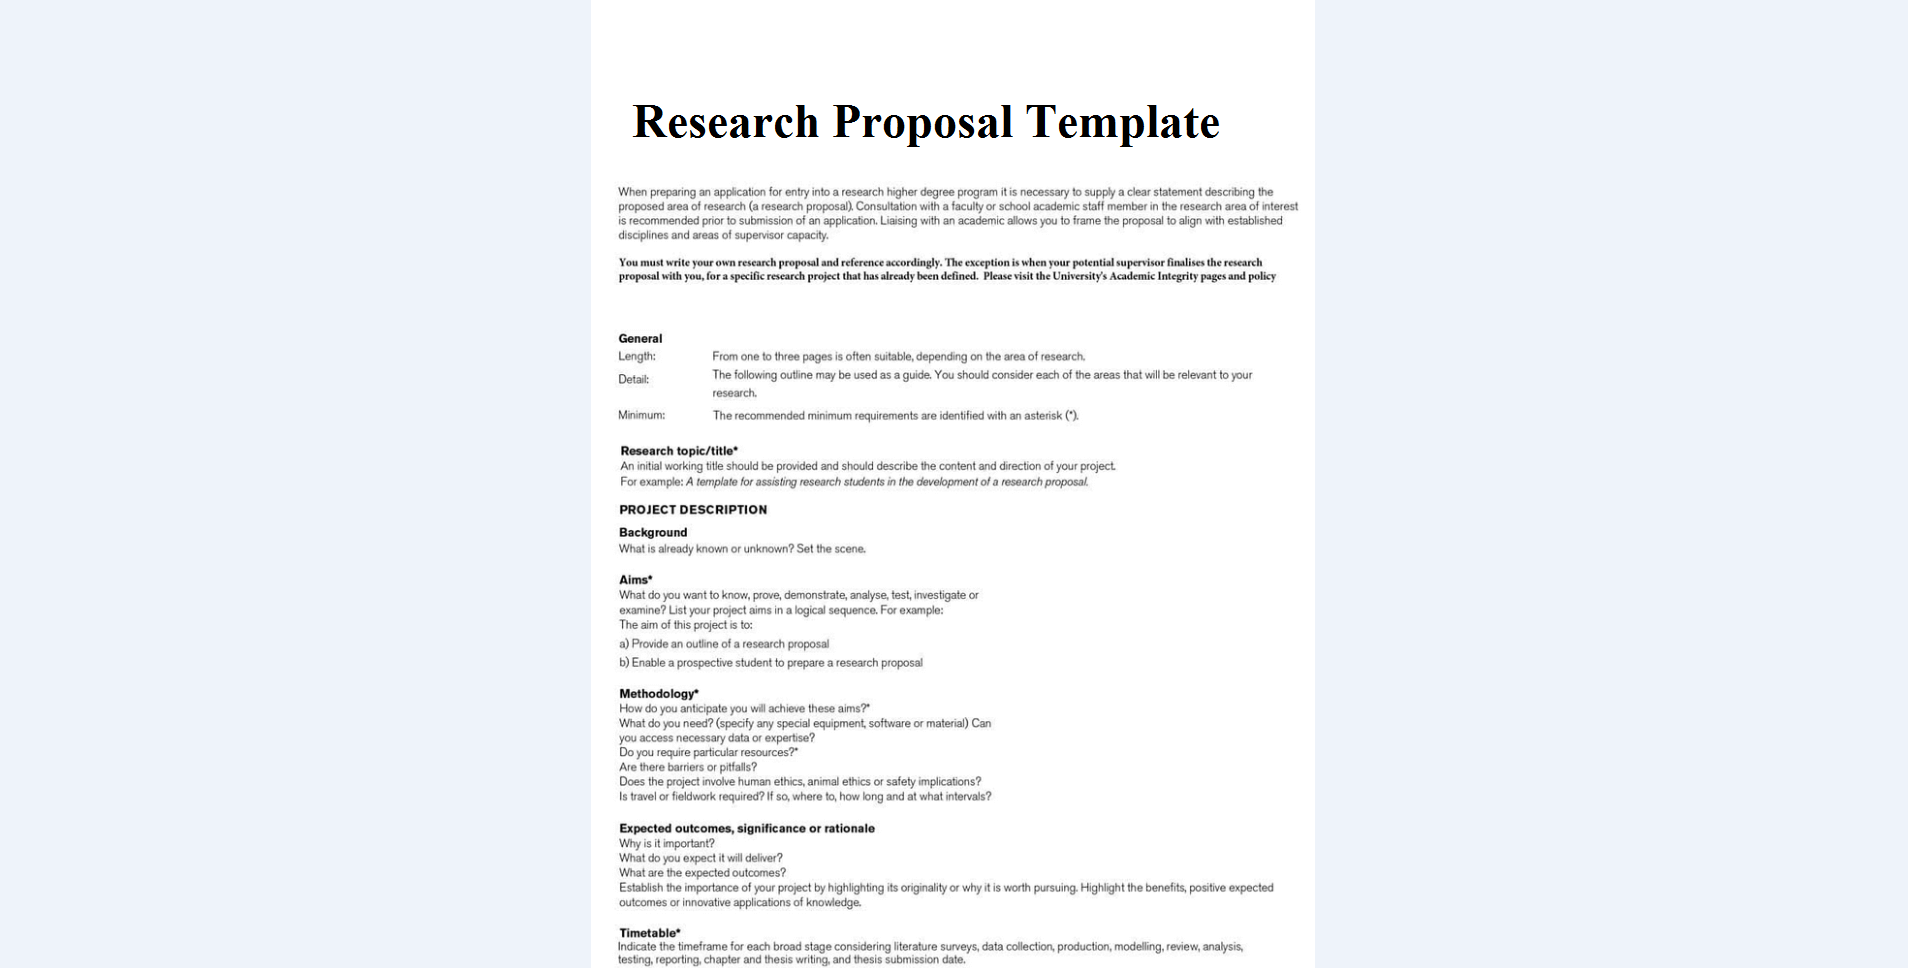 How To Write A Research Proposal And Common Mistakes To Avoid?